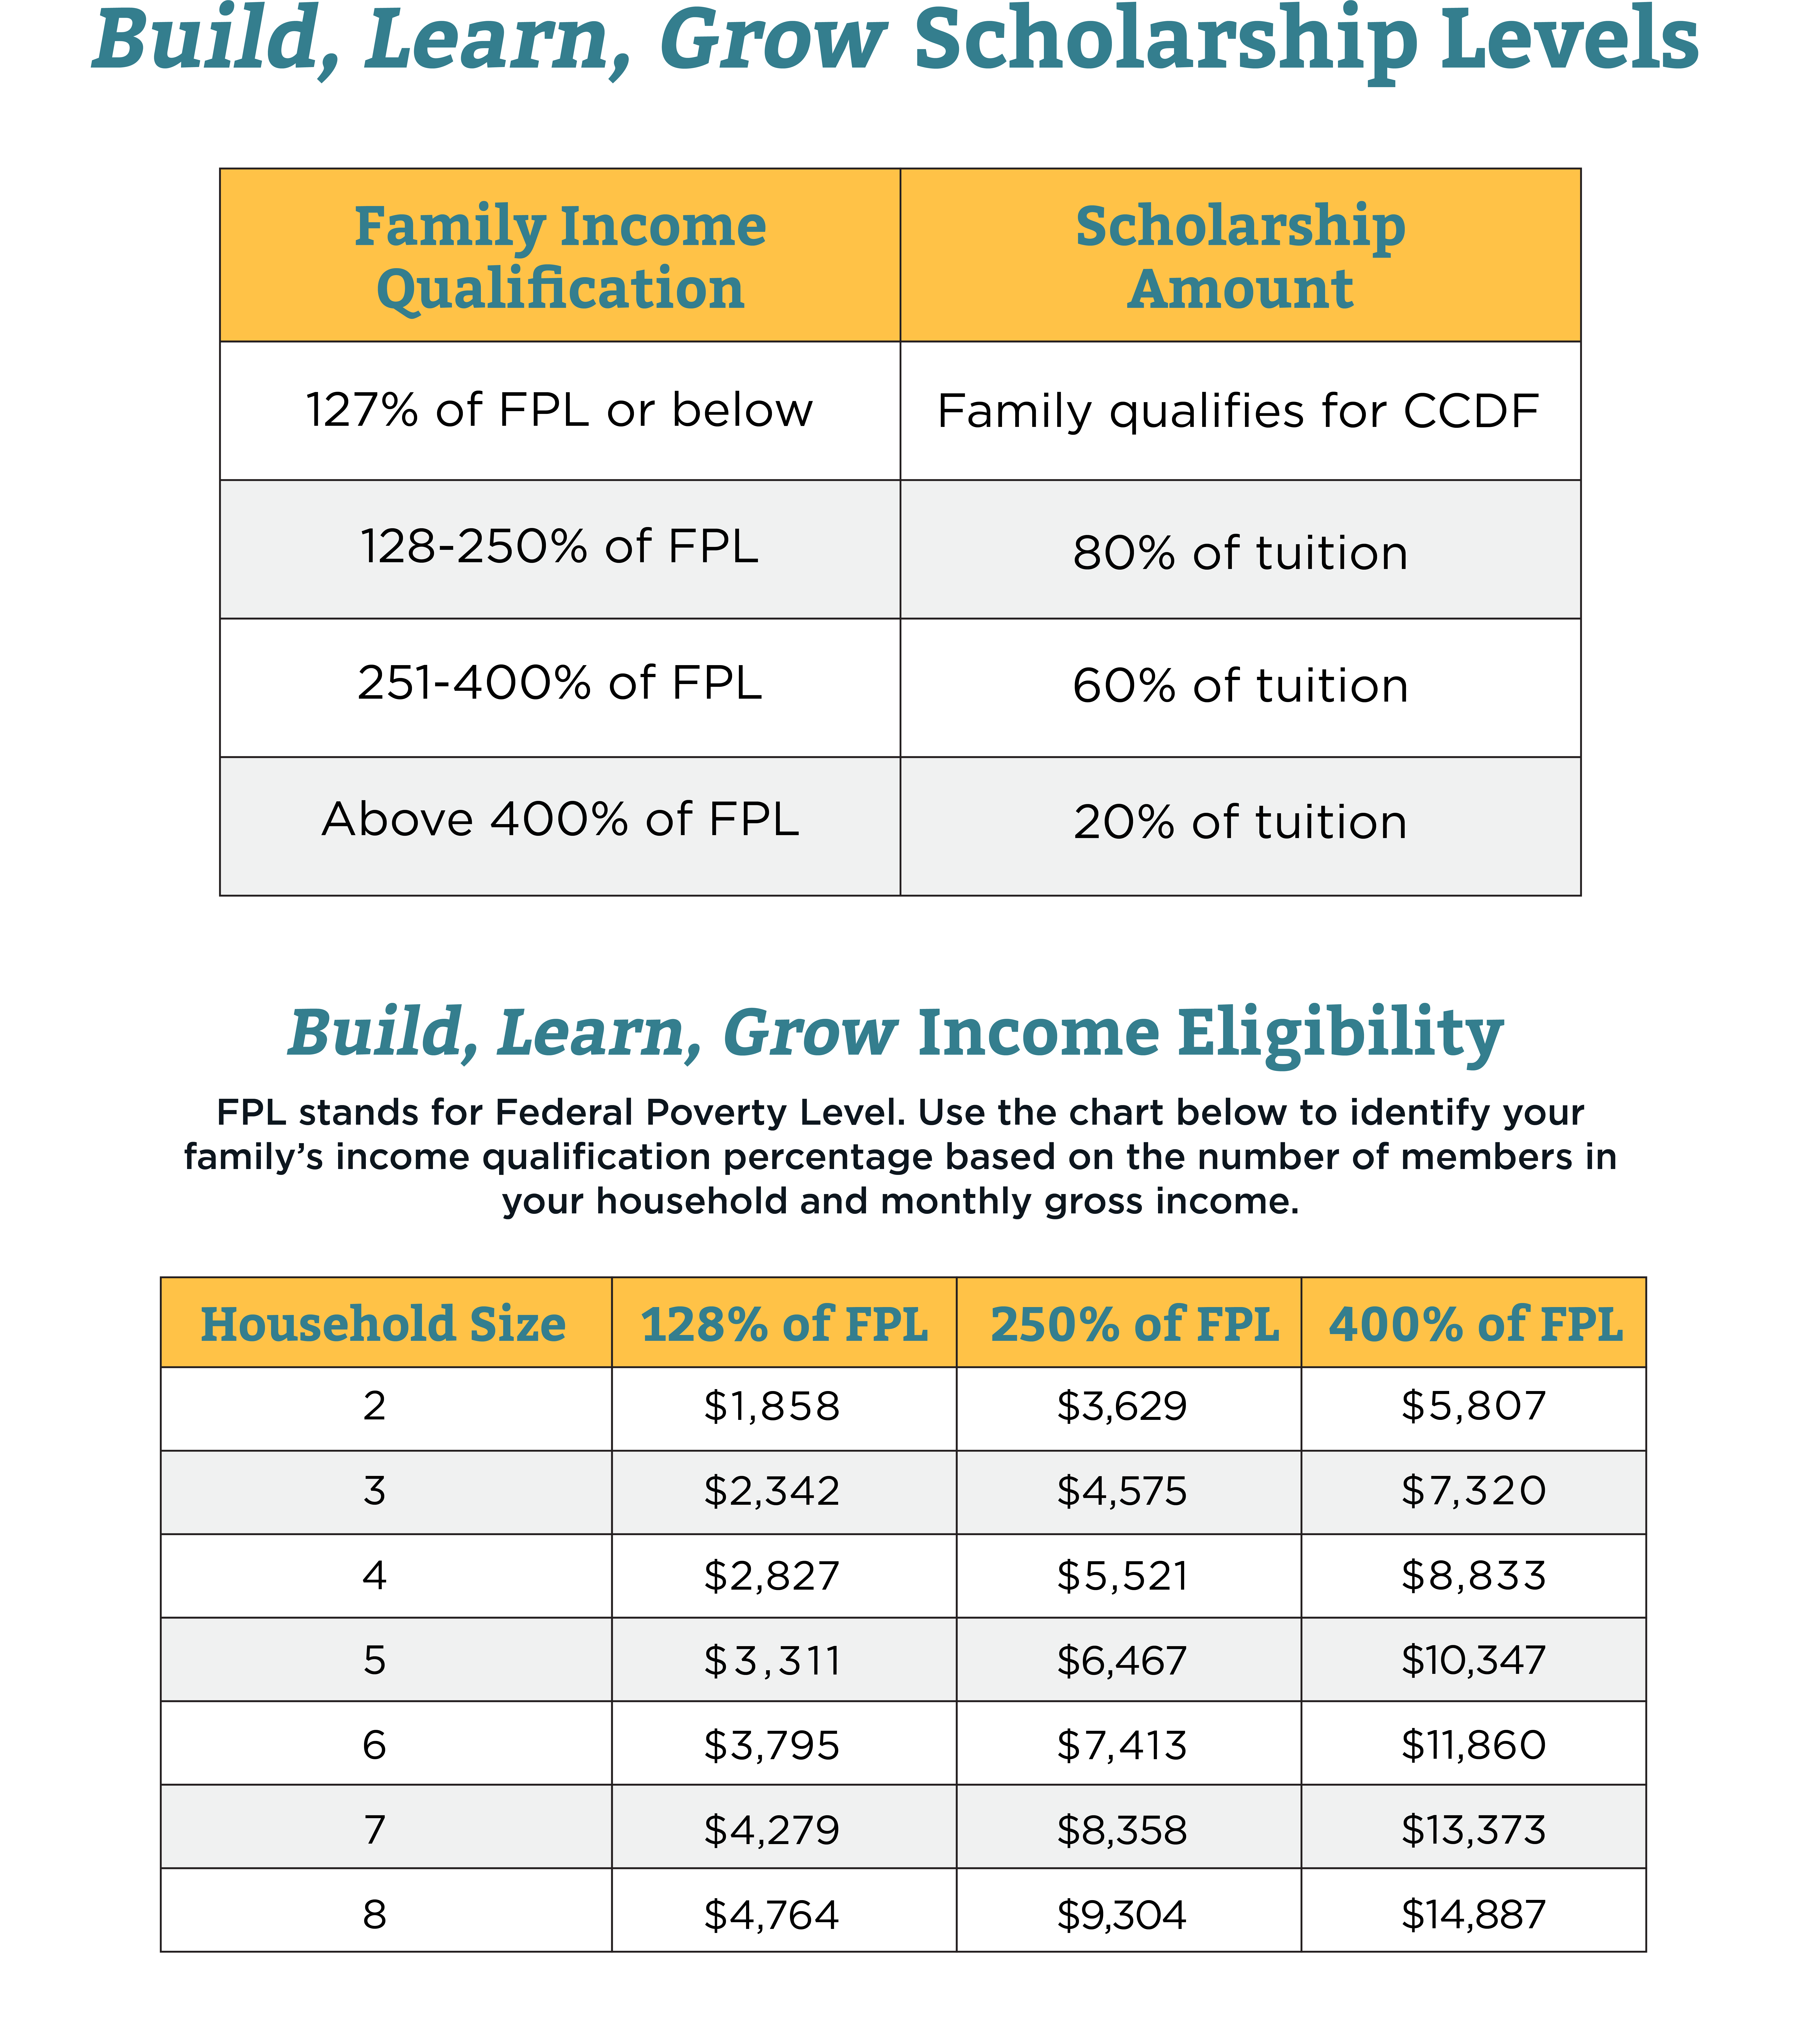 Build, Learn, Grow  Scholarship Level and Income Eligibility data